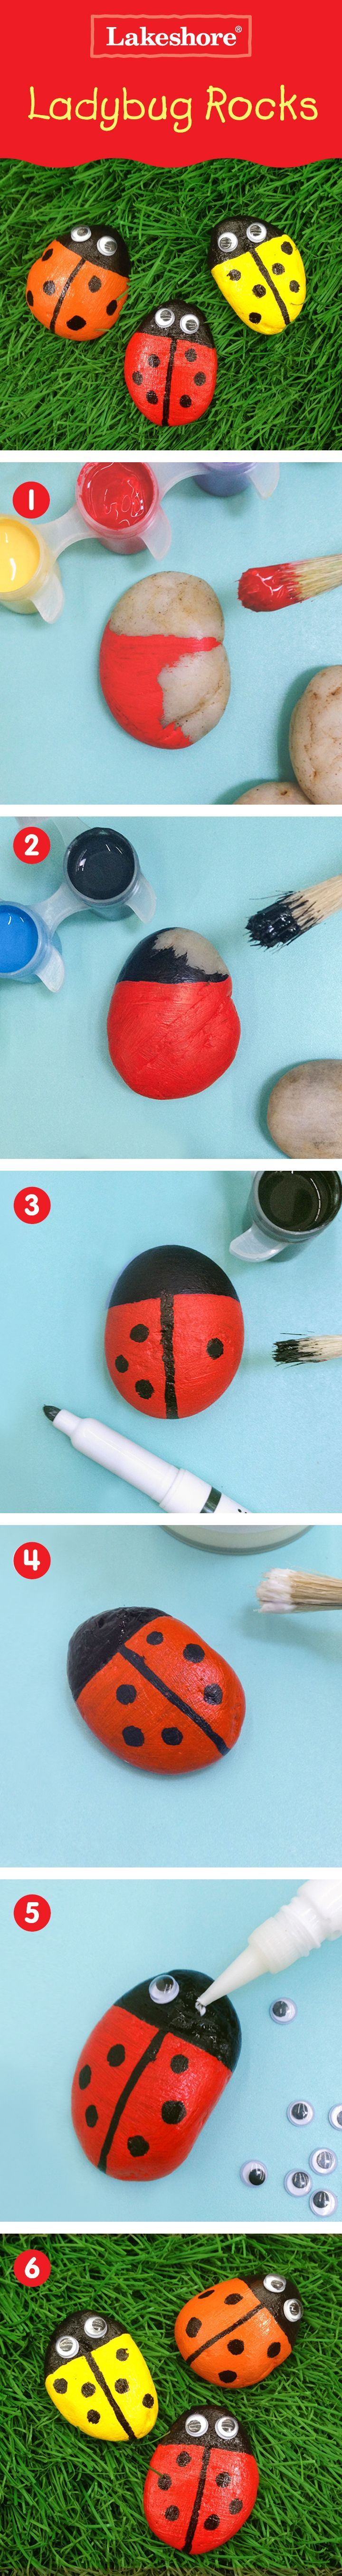 ladybug painted rocks will liven up your garden lady bugs